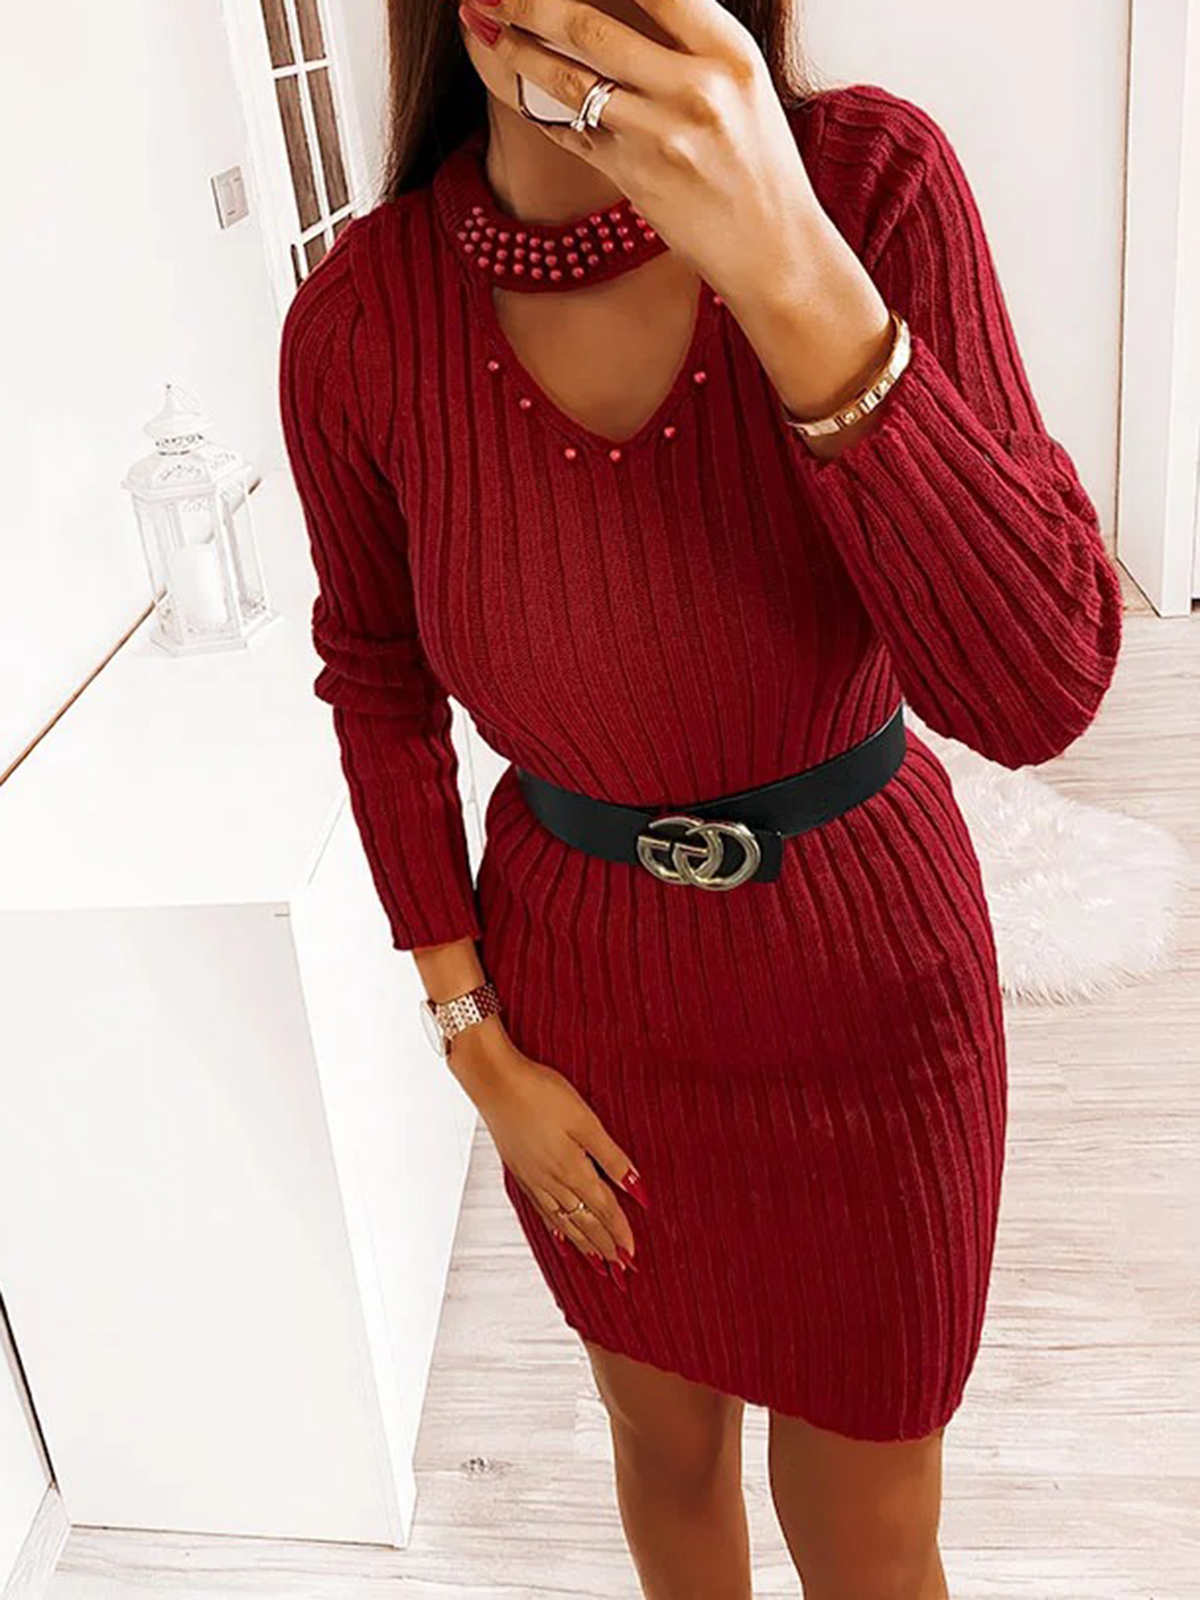 Women'S Tight Knitted Sexy Beaded Dress